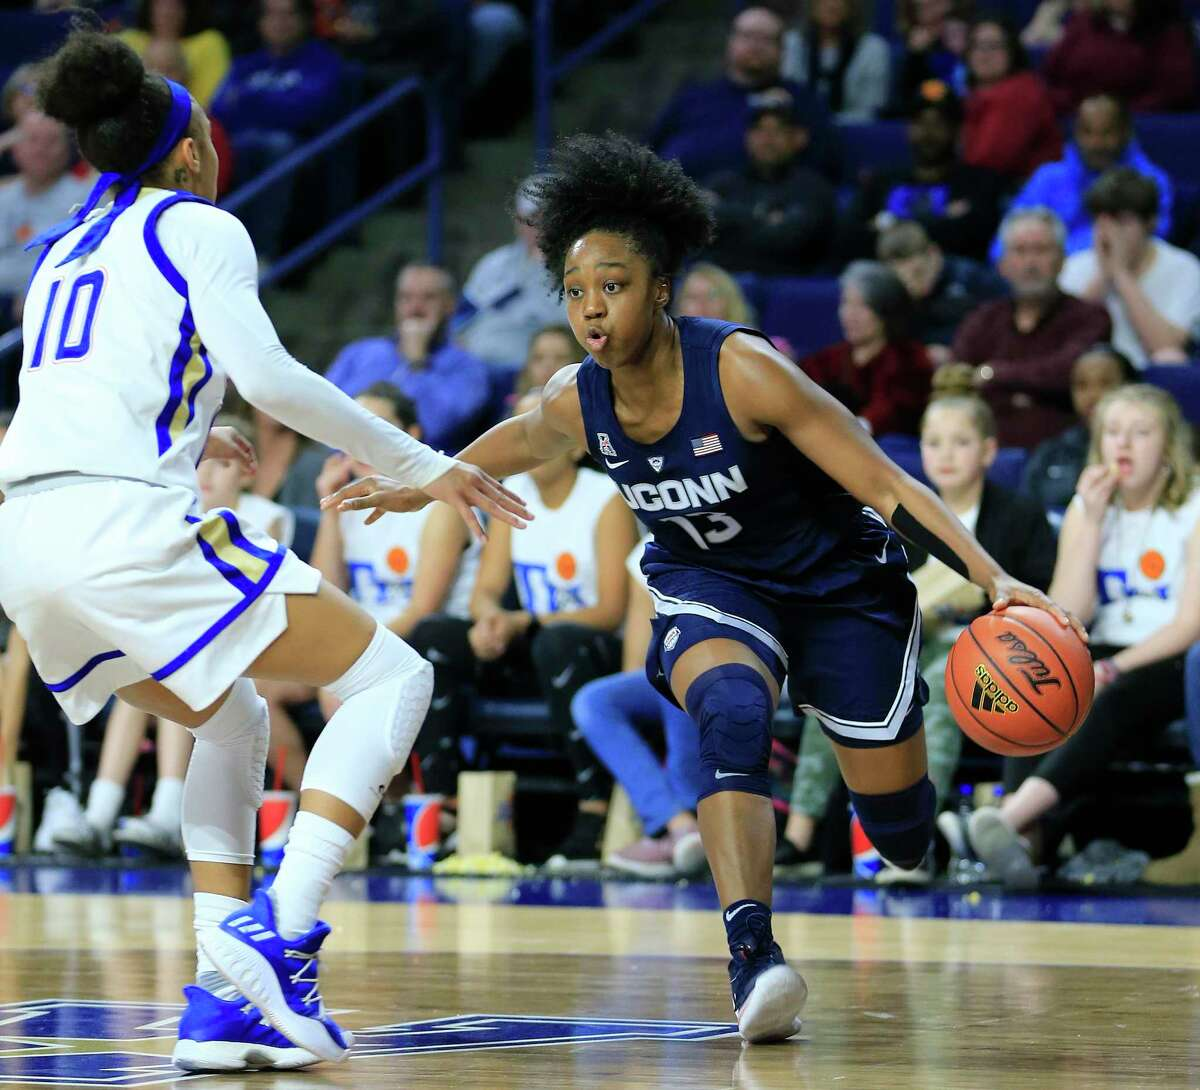 UConn's Christyn Williams drives around Tulsa's Alexis Gaulden during the first half of a game in Tulsa, Okla., on Feb. 24, 2019.